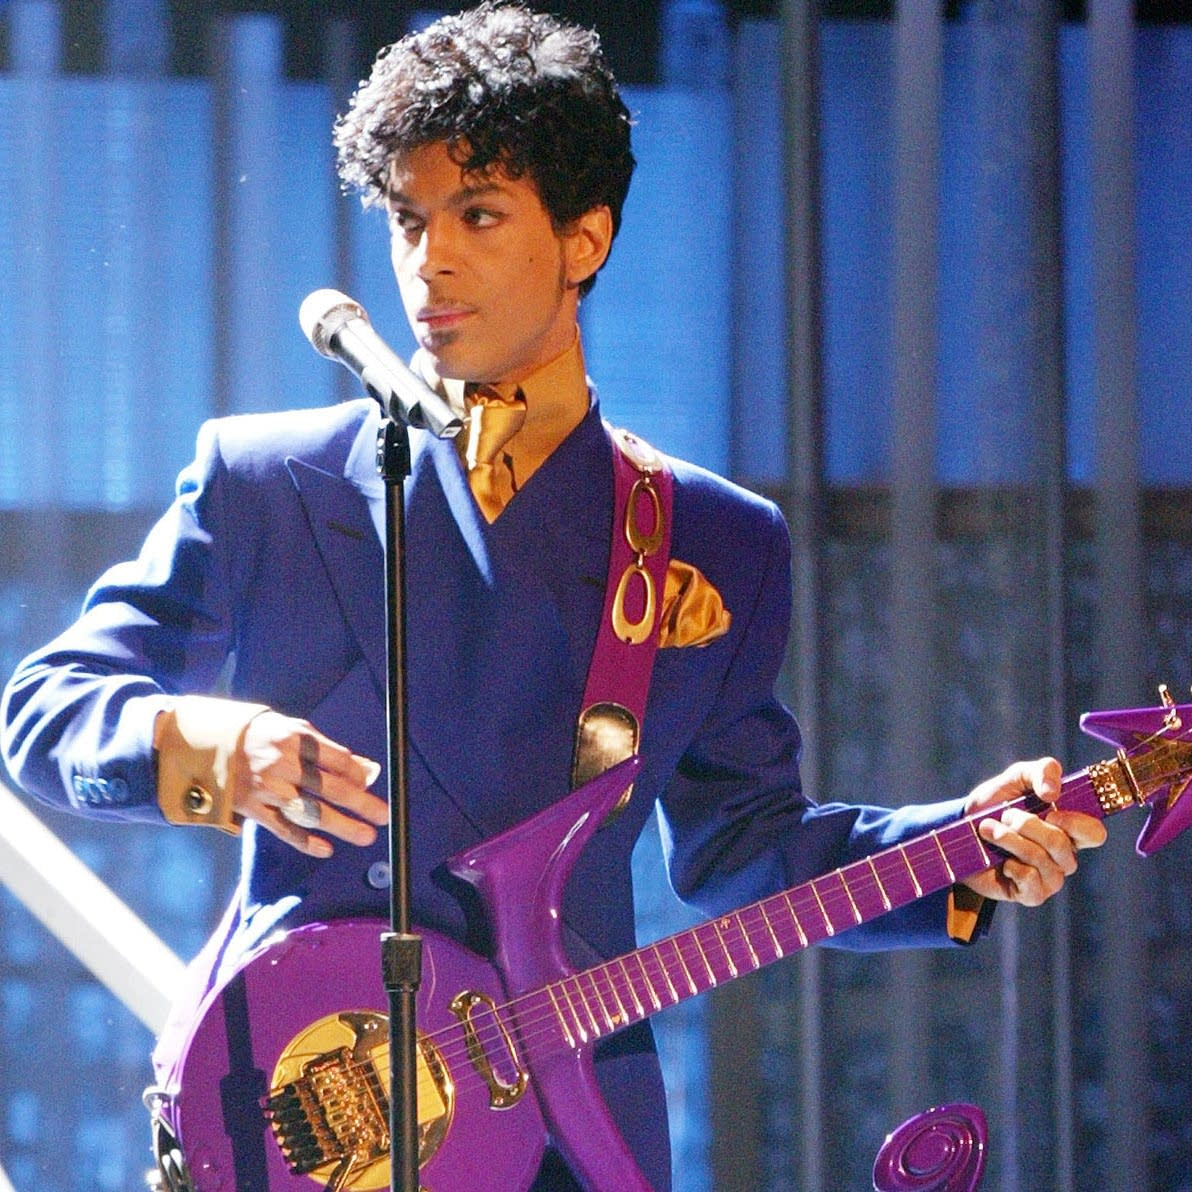 Prince lovesexy track times